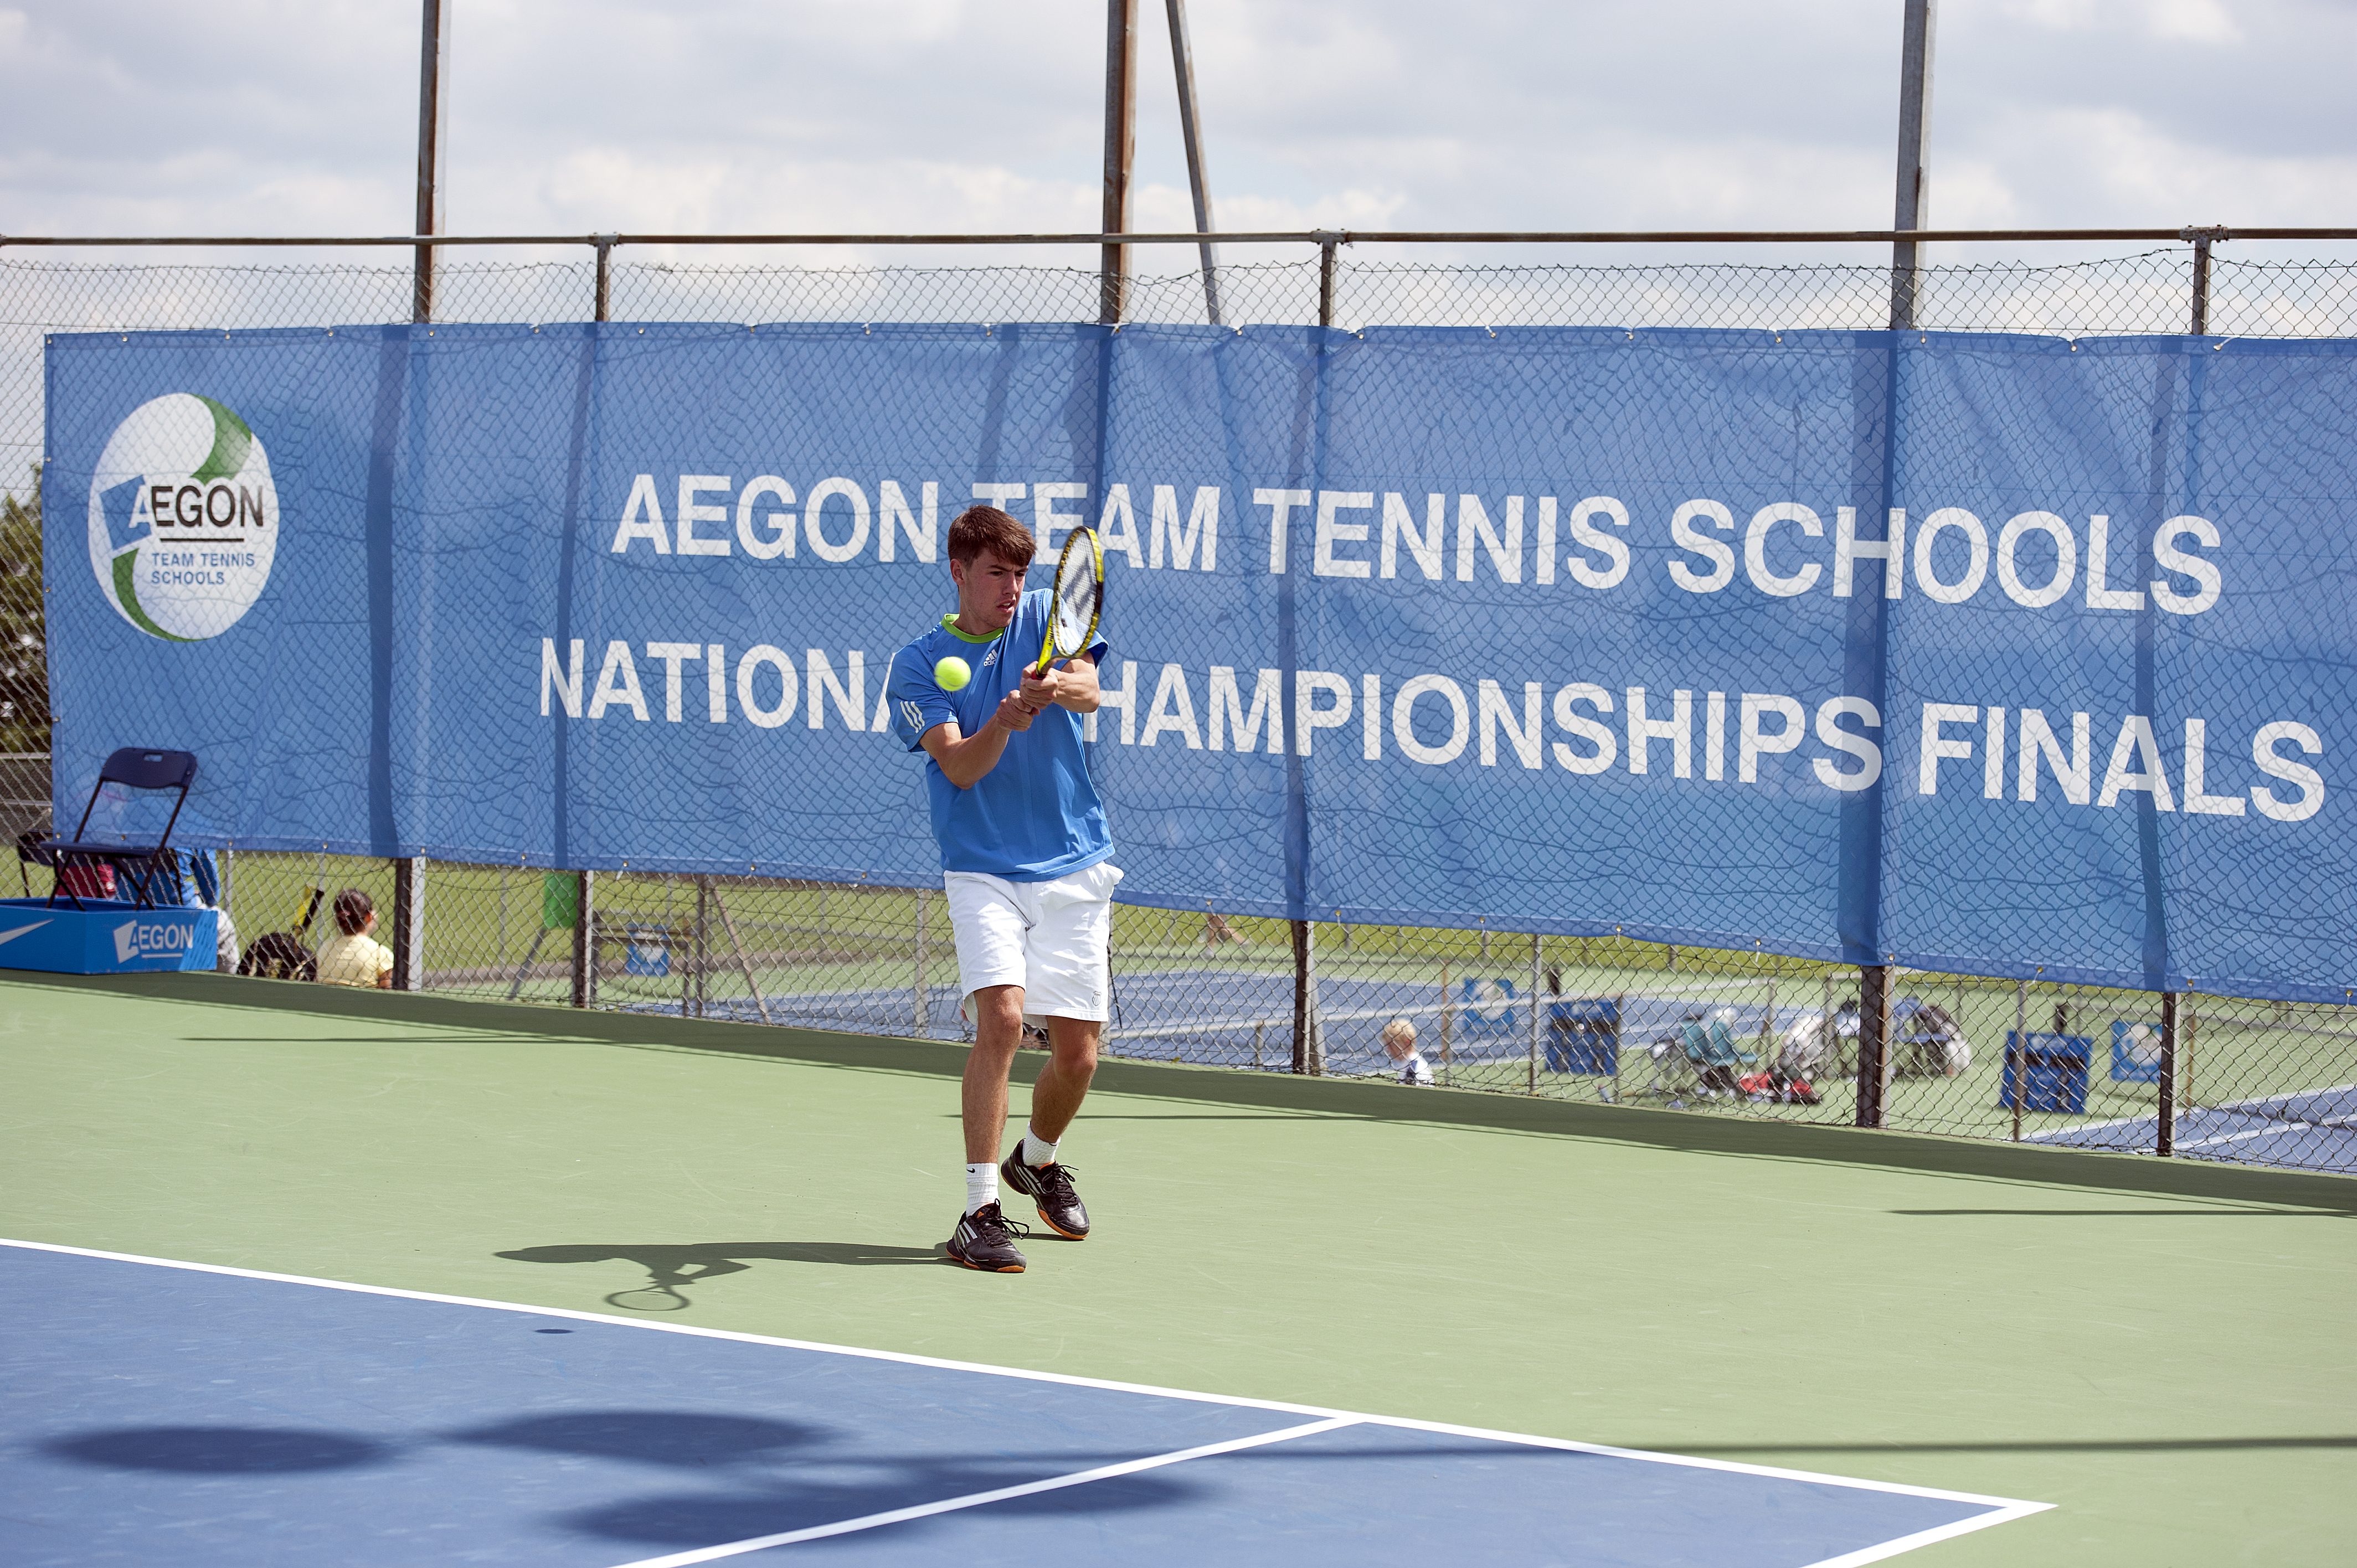 AEGON Tennis School Nationa Championship Finals 2012 with printed Austronet windbreaks